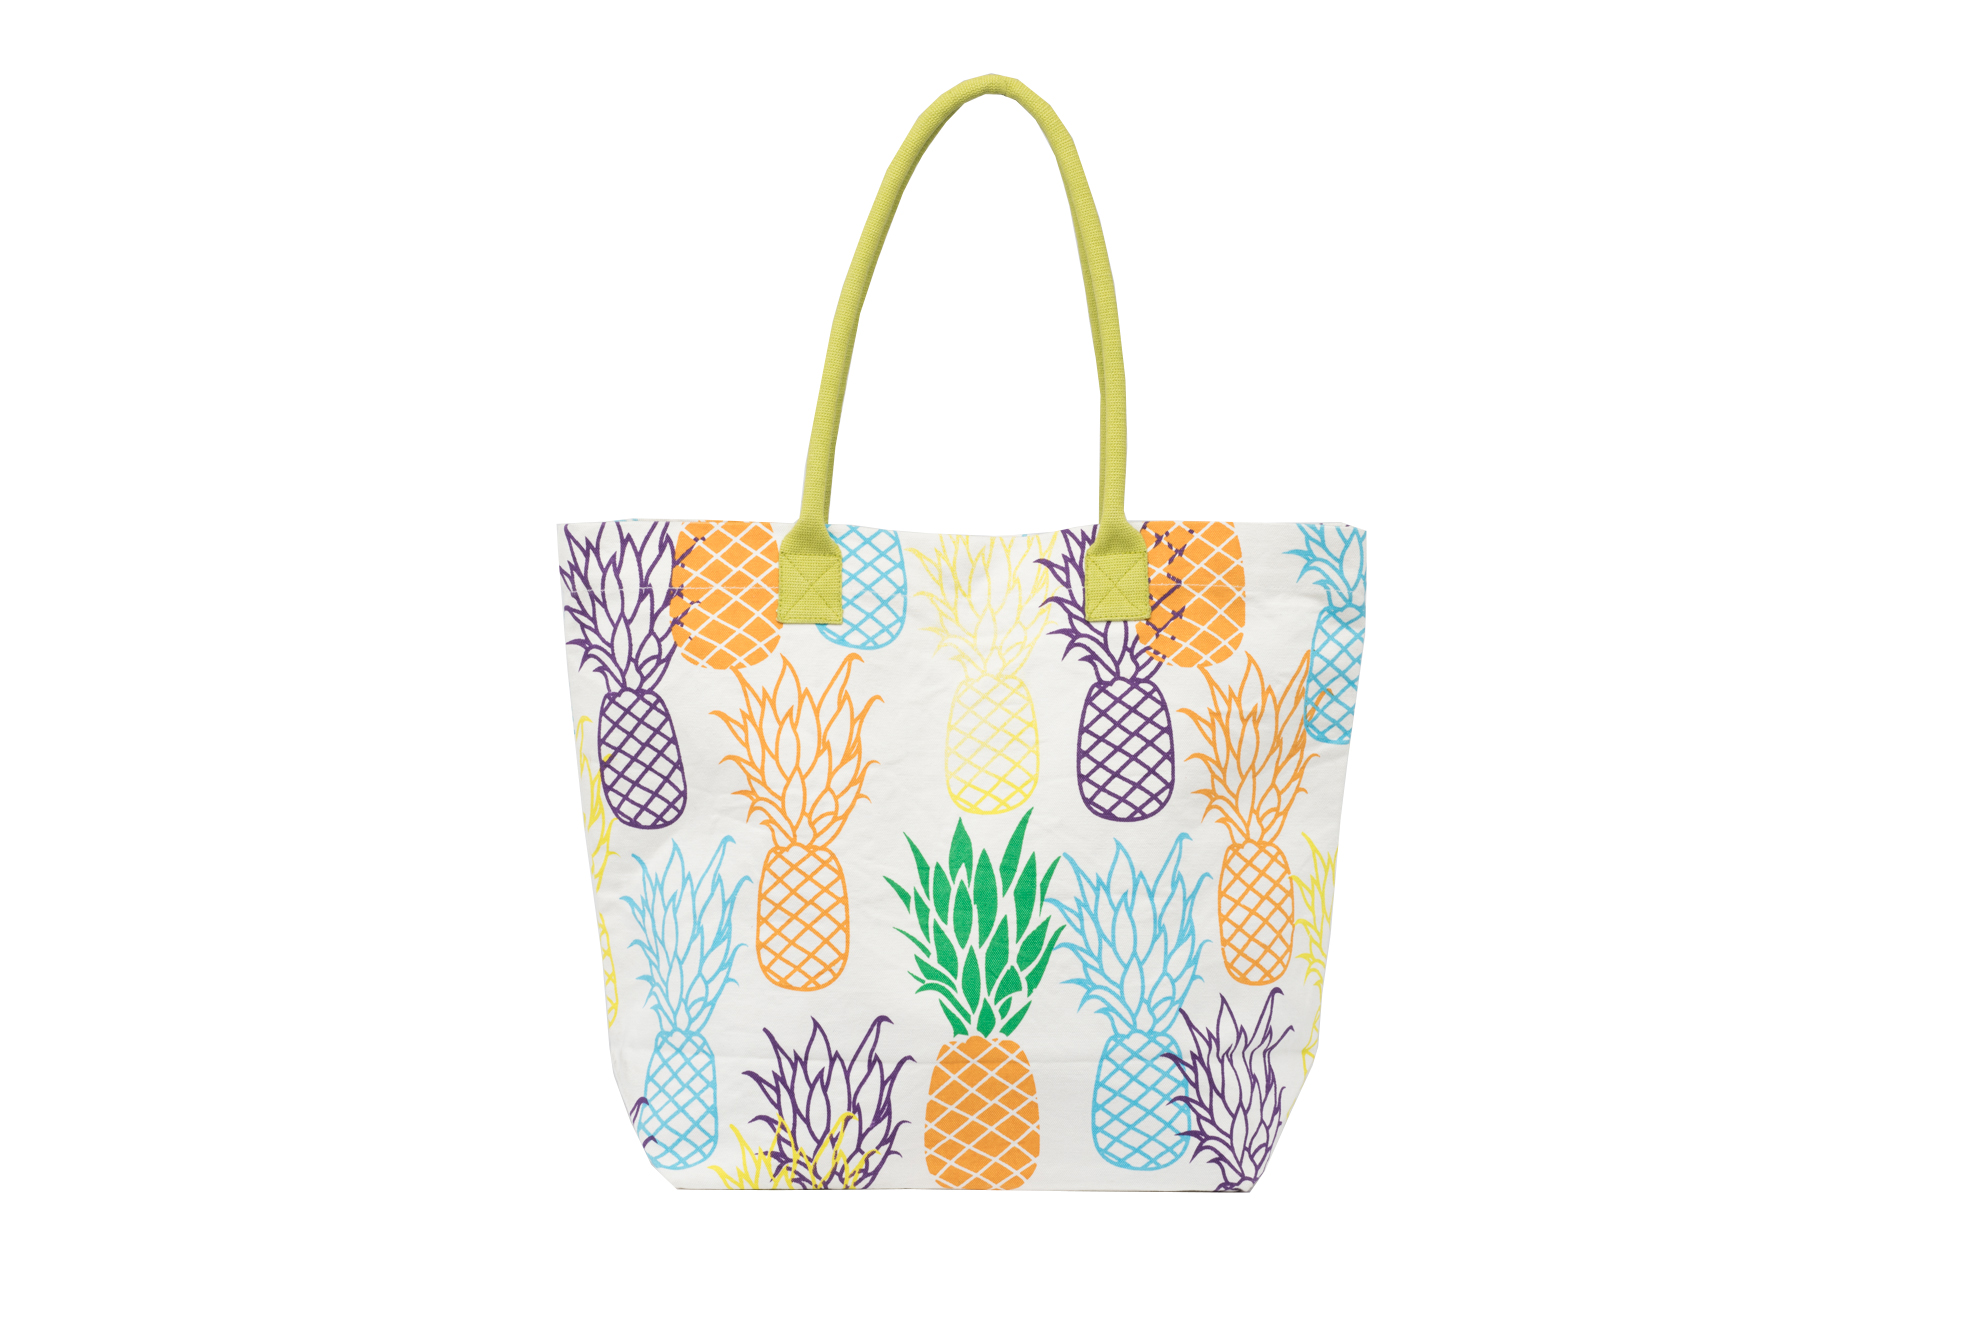 "BB14: H16"" x W20"" x BG6"" (26"" RT Handle, 14 oz organic cotton)"